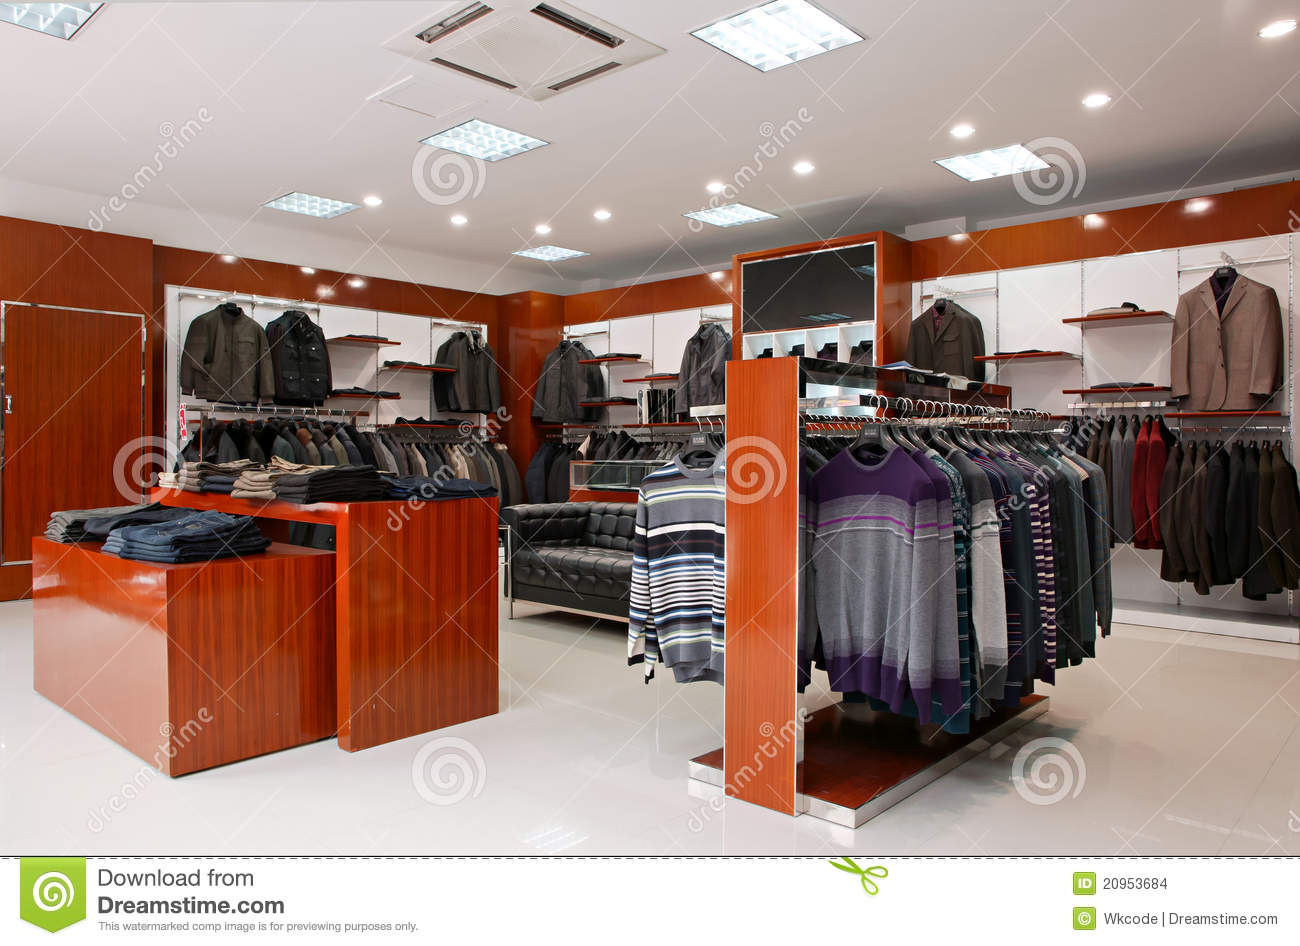 Men's Clothing Store Stock Images - Image: 20953684